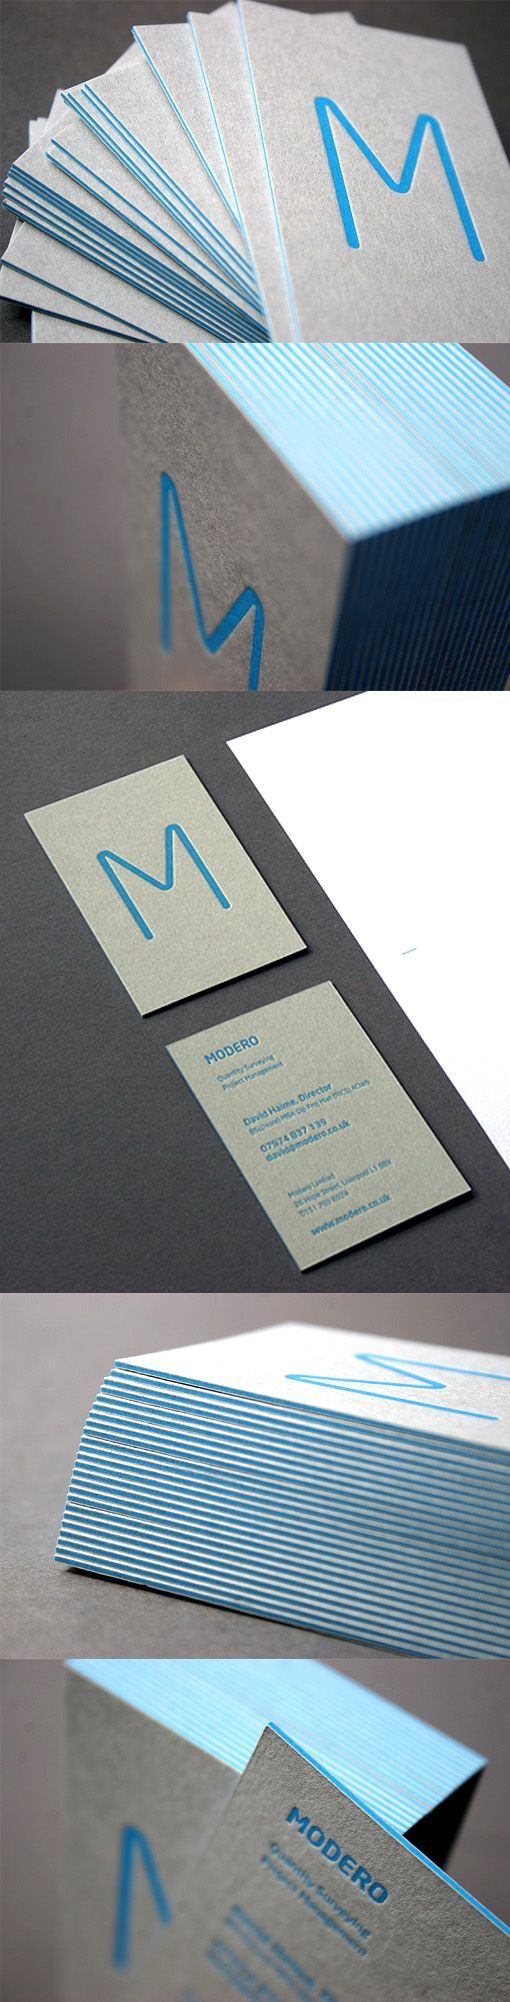 Minimalist Business Card Letterpress Printed On Recycled Card Stock